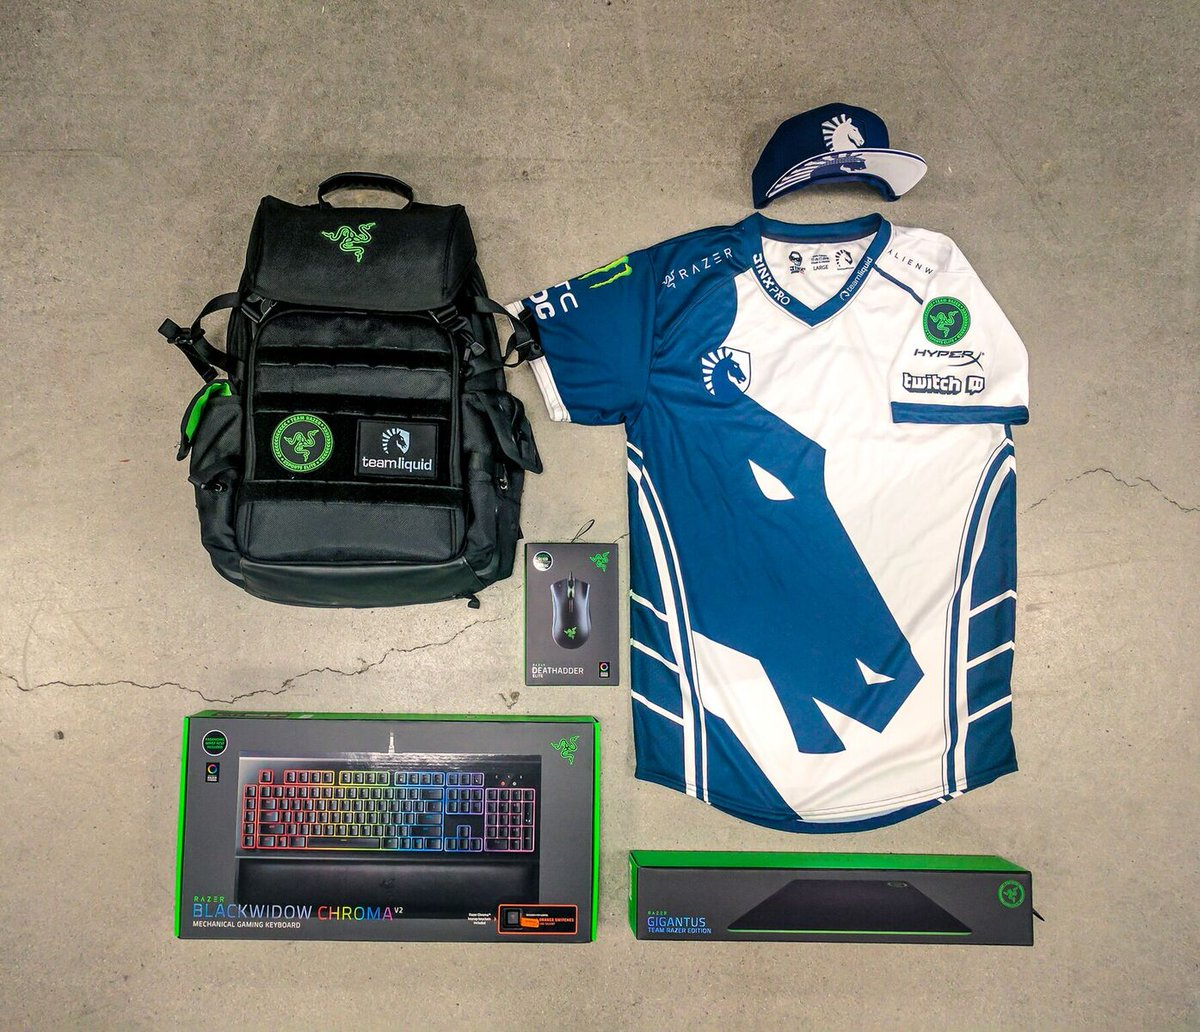 Gear up for #TI7 and enter to win this @...